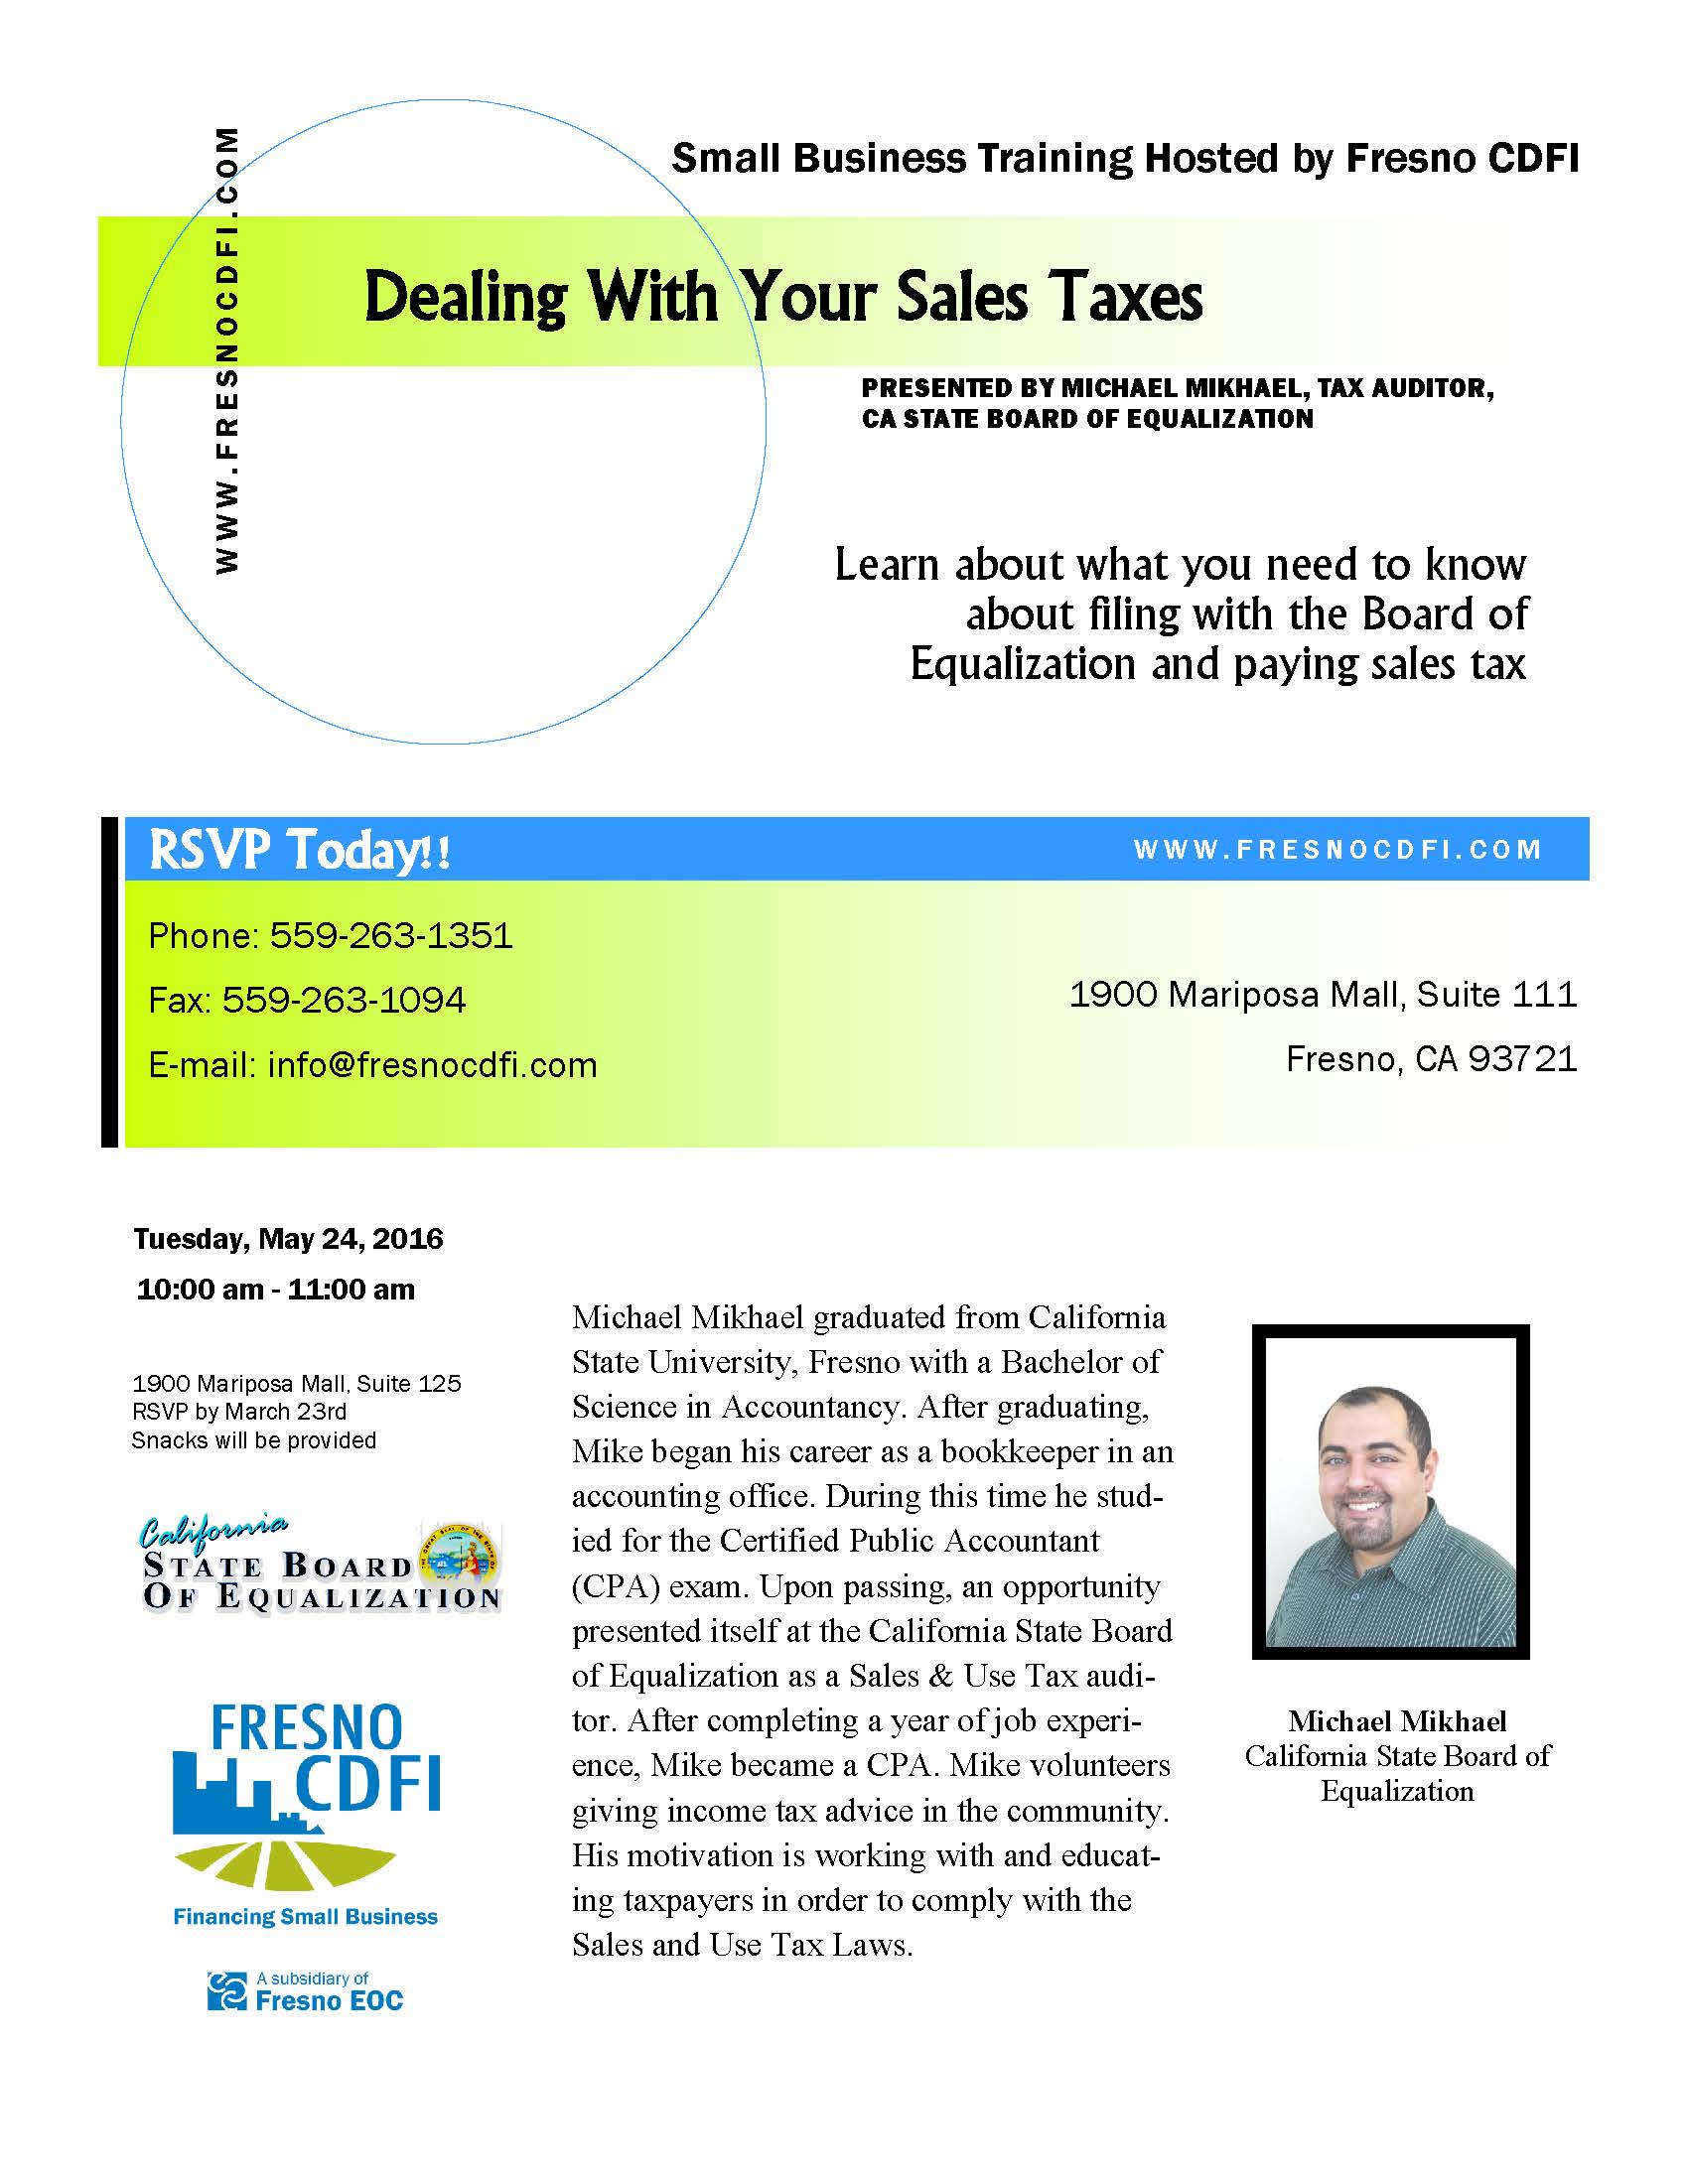 Dealing with Your Sales Taxes - Access Plus Capital